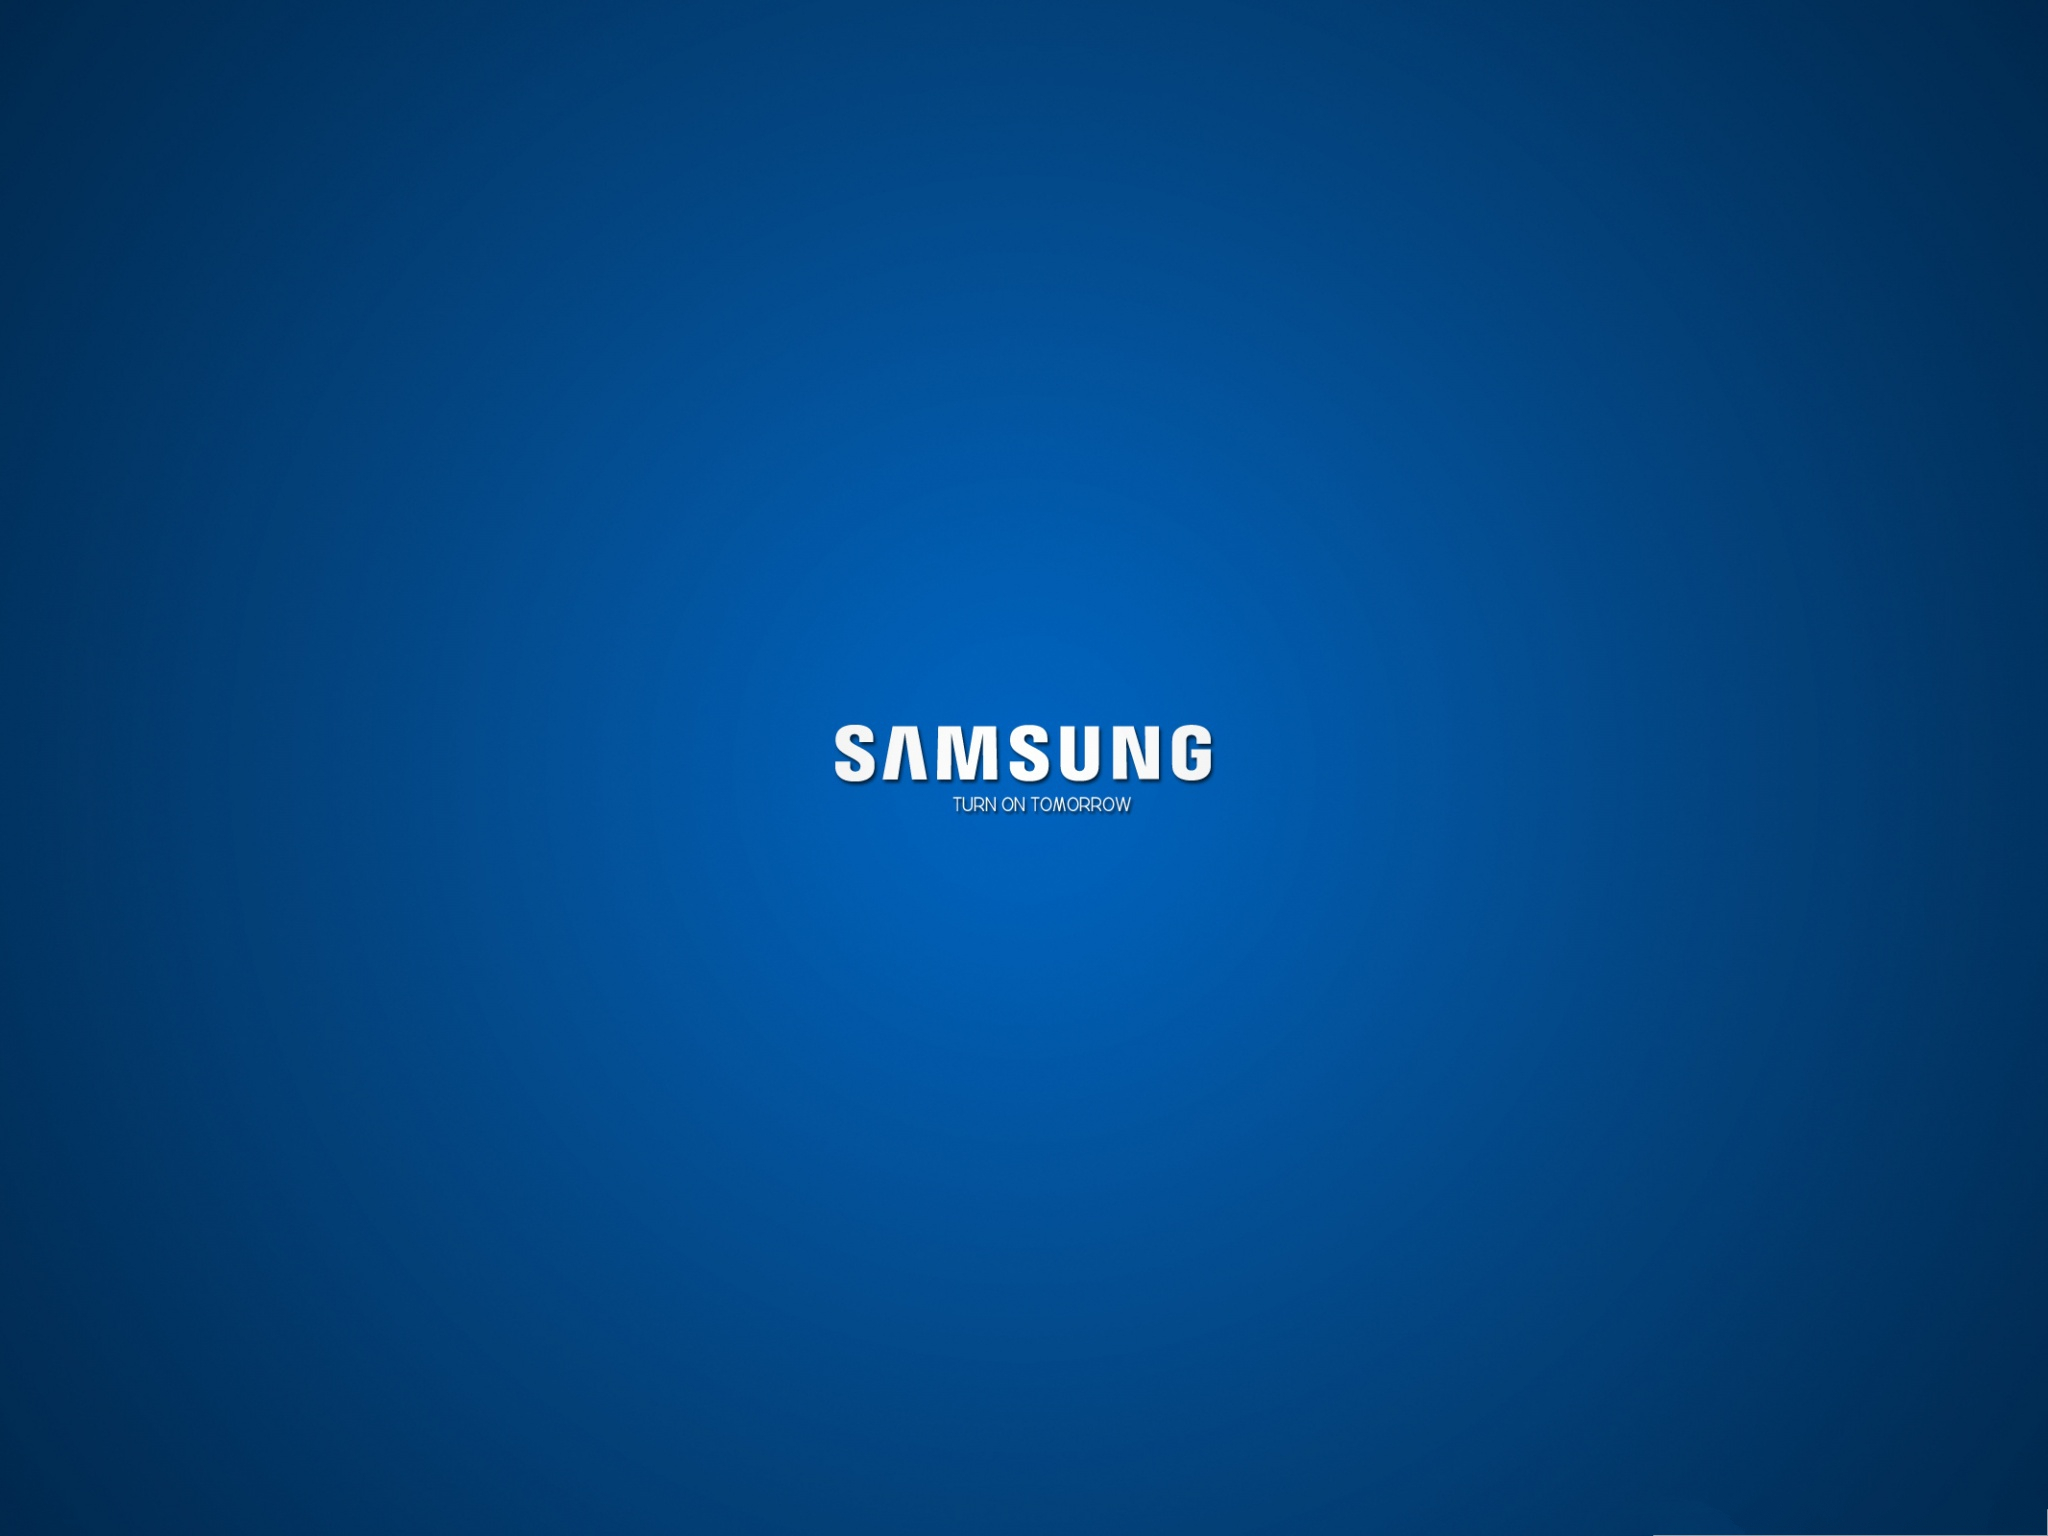 samsung galaxy wallpapers for phone